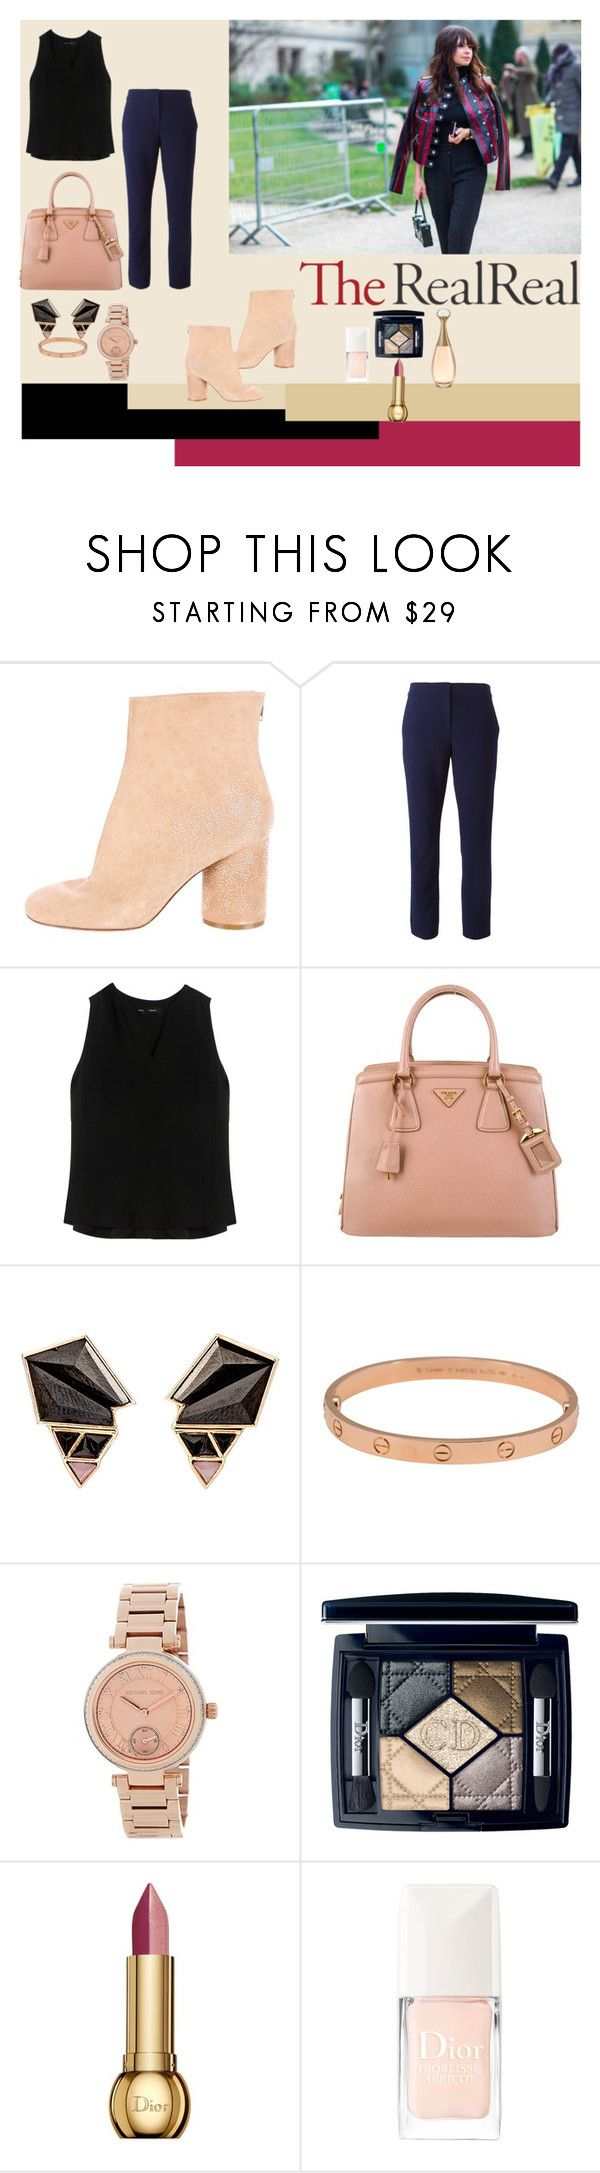 """Fall Style With The RealReal: Contest Entry"" by popescu-io on Polyvore featuring Maison Margiela, Diane Von Furstenberg, Proenza Schouler, Prada, Nak Armstrong, Cartier, MICHAEL Michael Kors and Christian Dior"